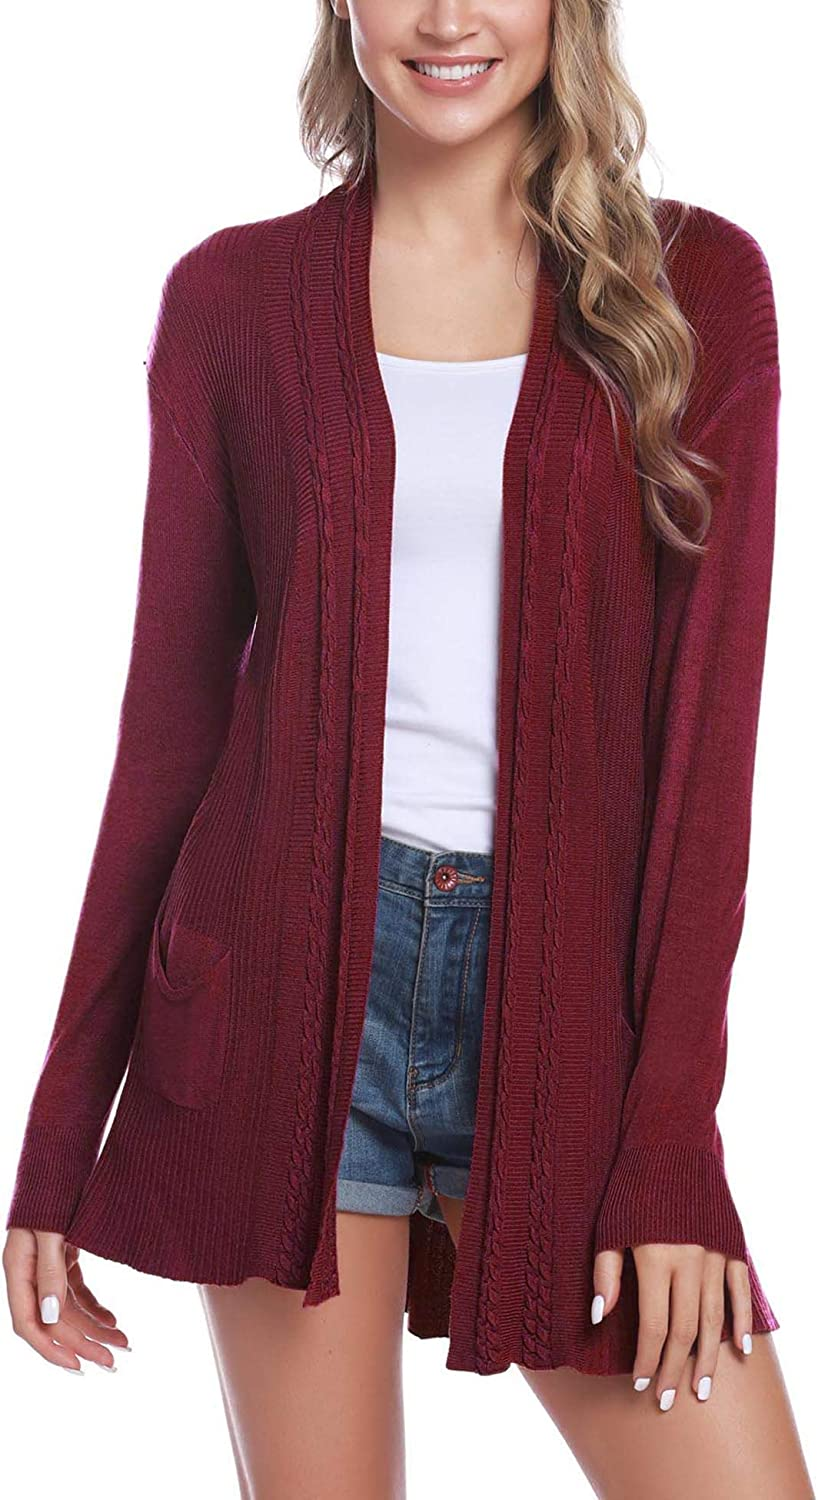 iClosam Womens Casual Knitted Long Sleeve Lightweight Open Front Cardigan Sweater with Pockets